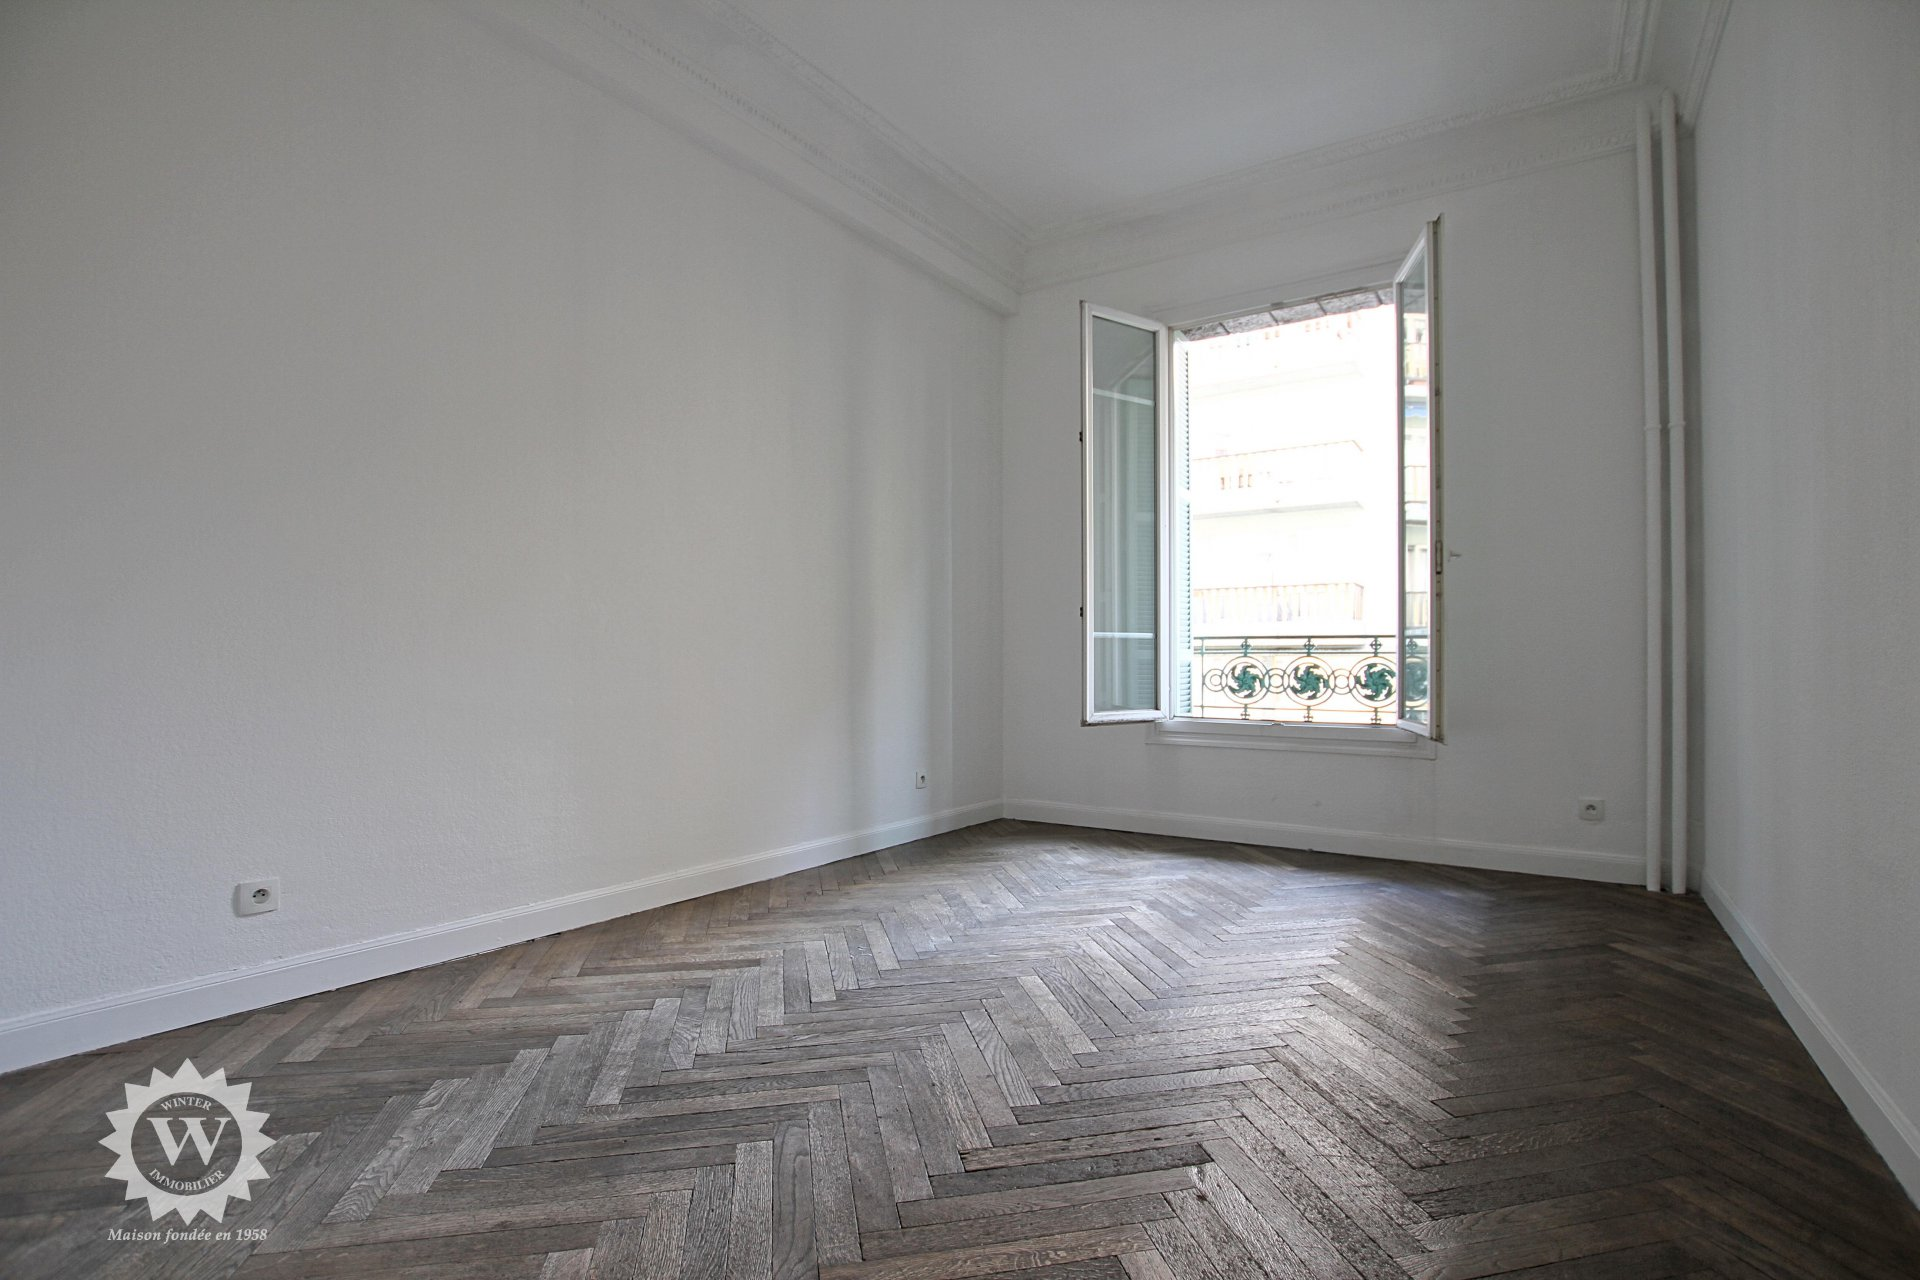 4rooms (3bedrooms) flat with terrace